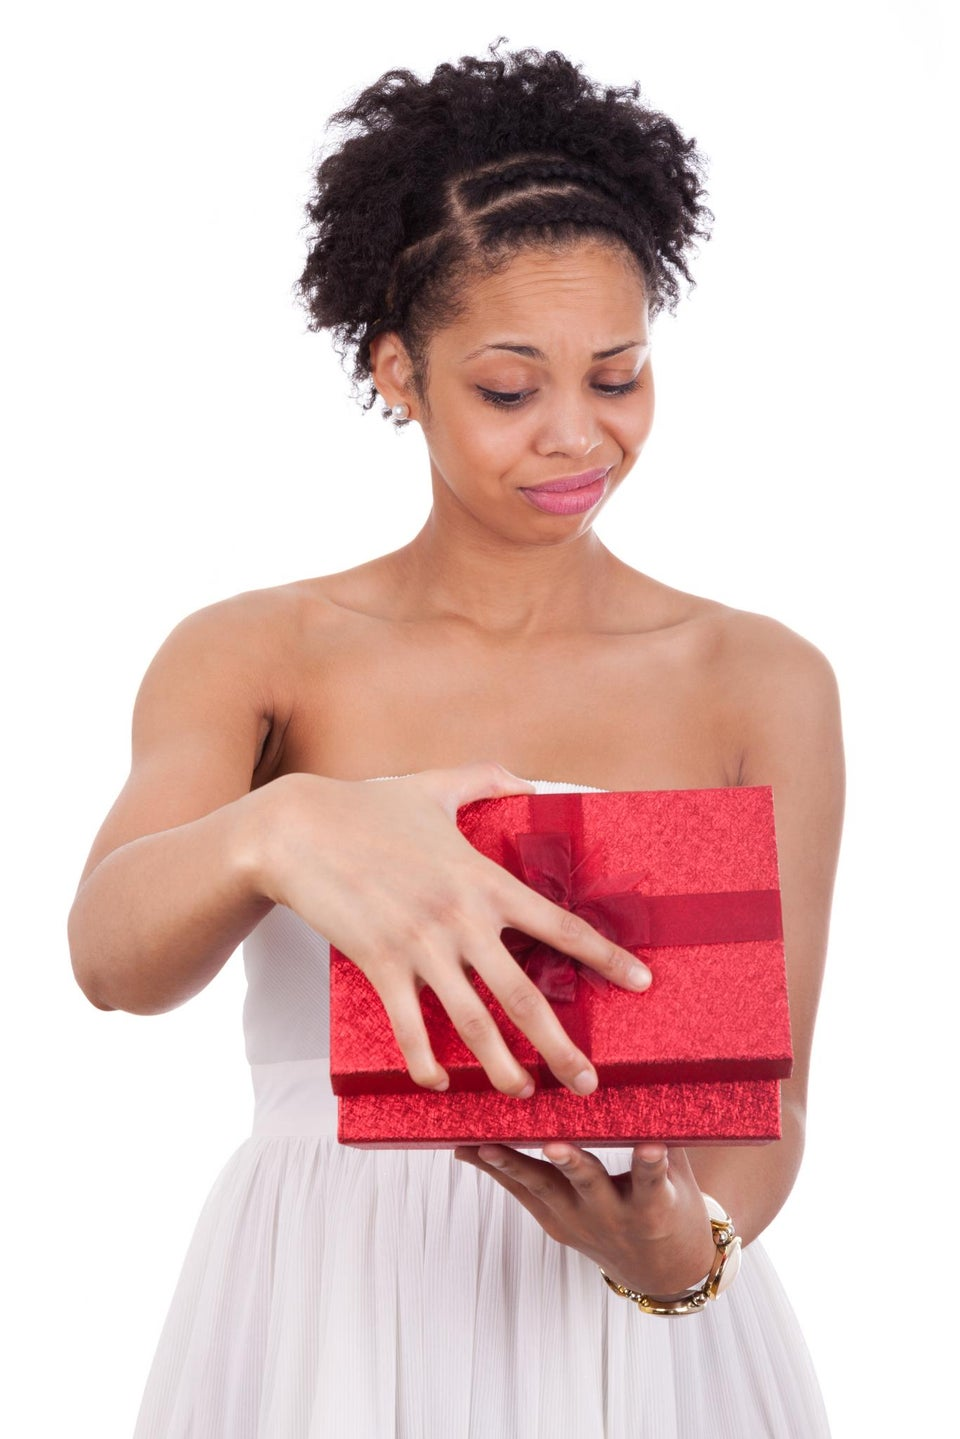 ESSENCE Poll: What's The Worst Gift You've Ever Received?